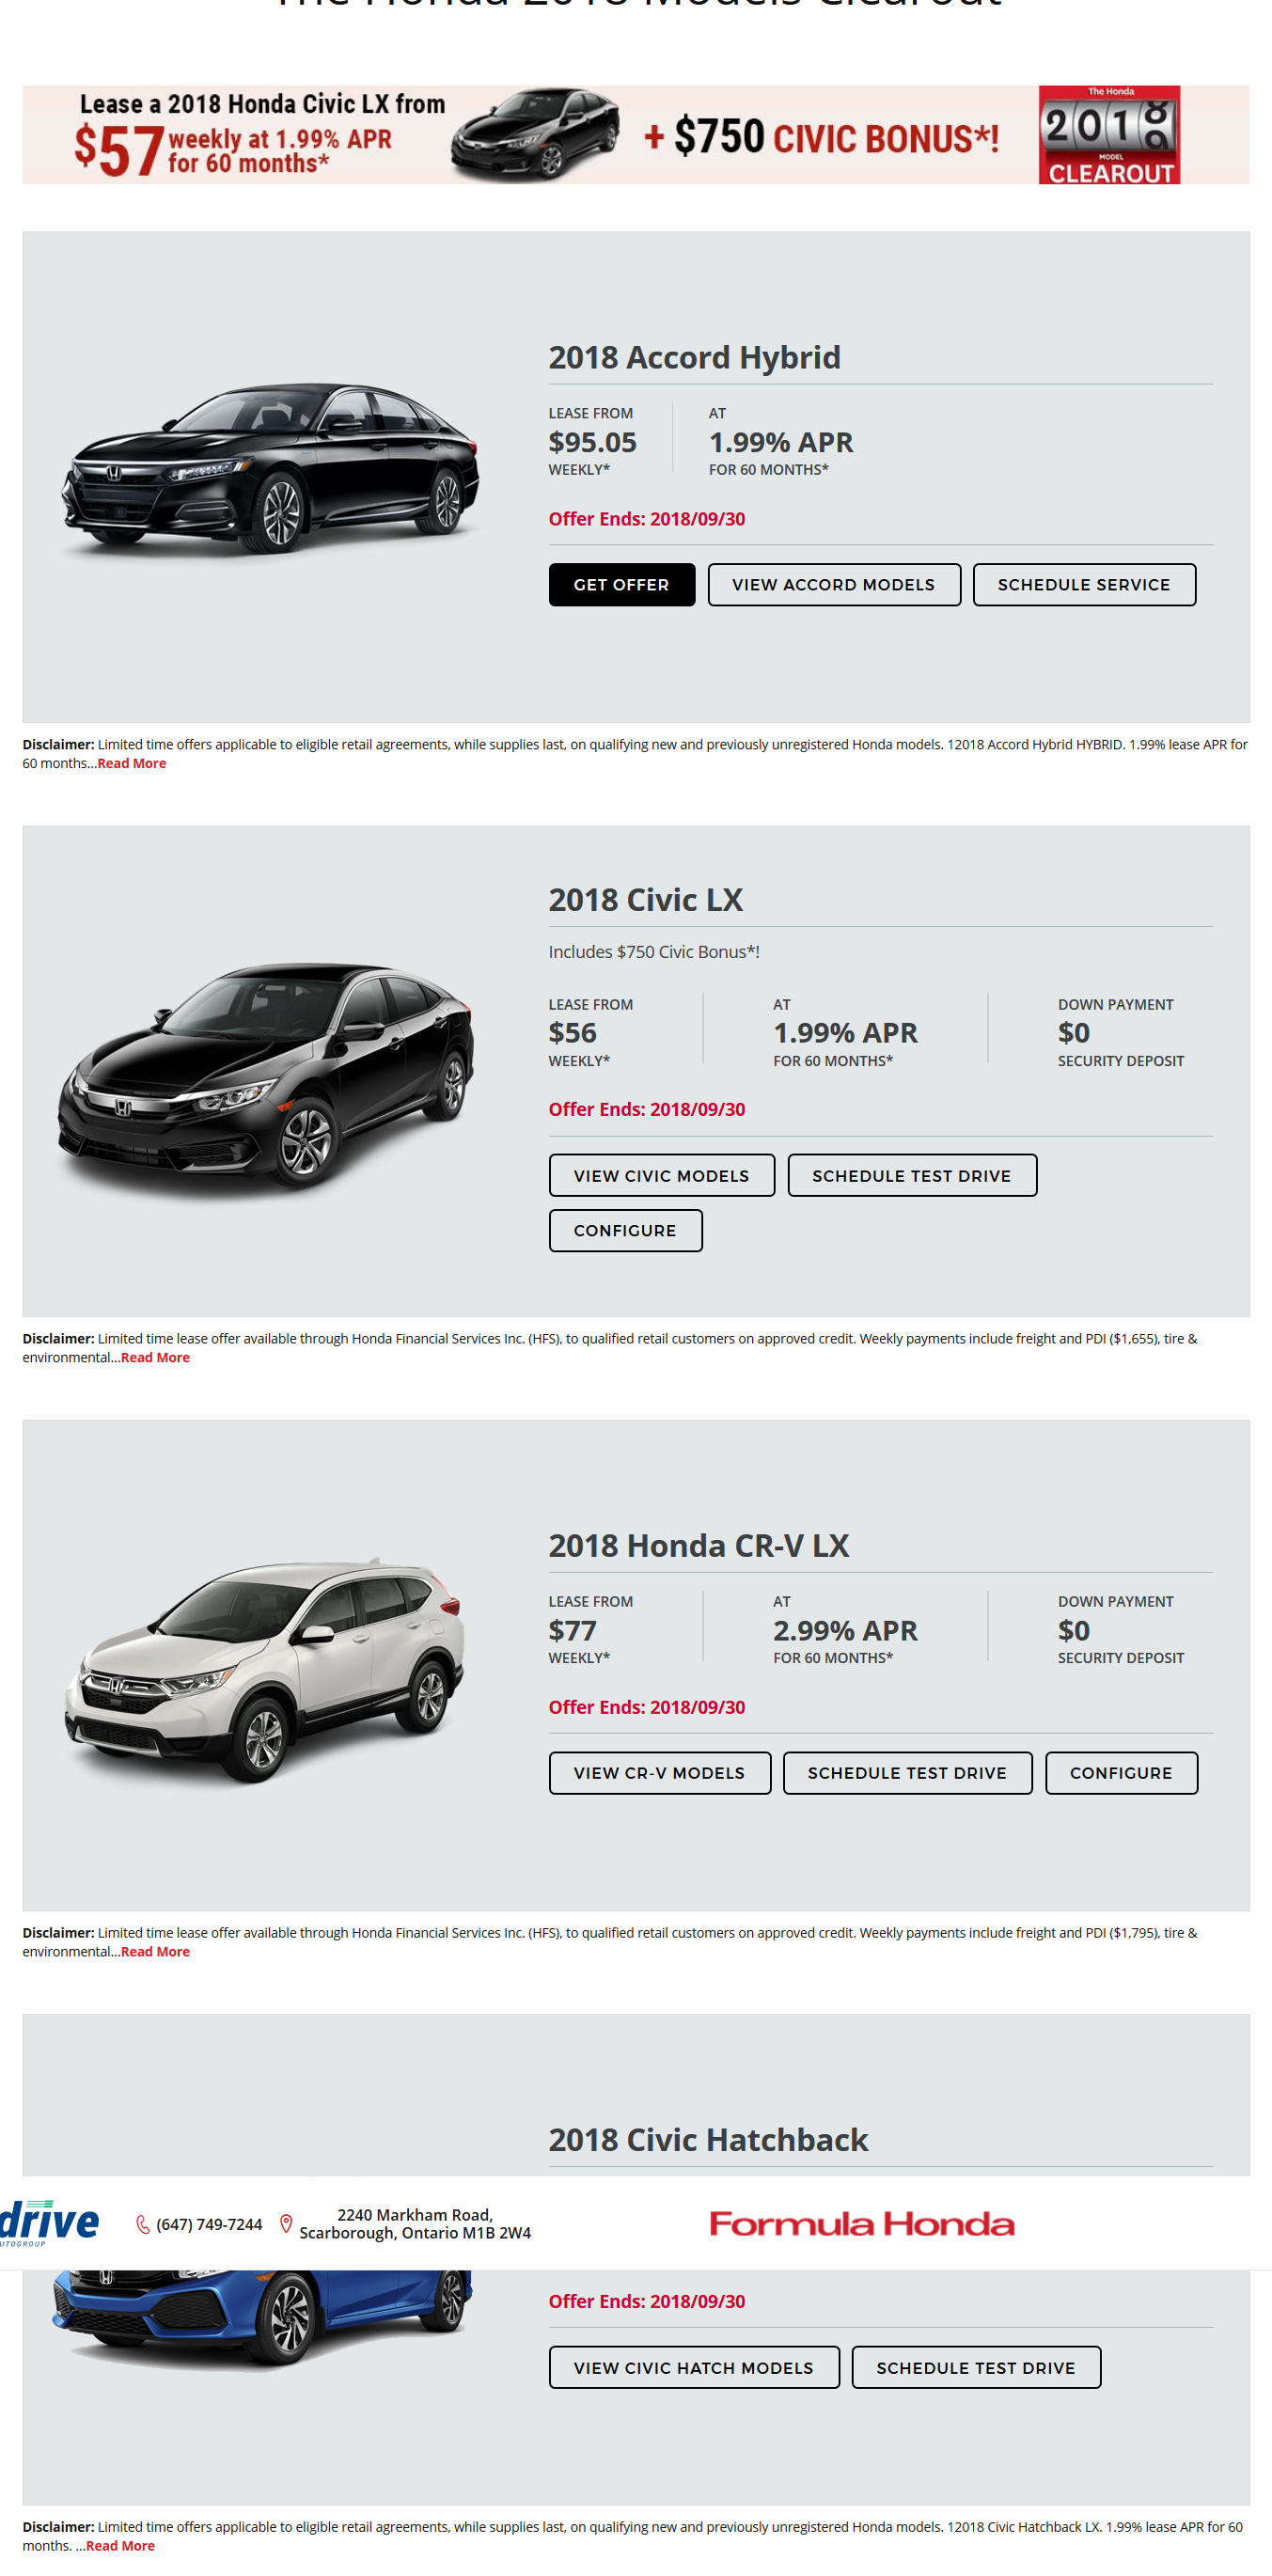 Screenshot_2018-09-14 Toronto Honda incentives Formula Honda Toronto Honda Dealer ON .png